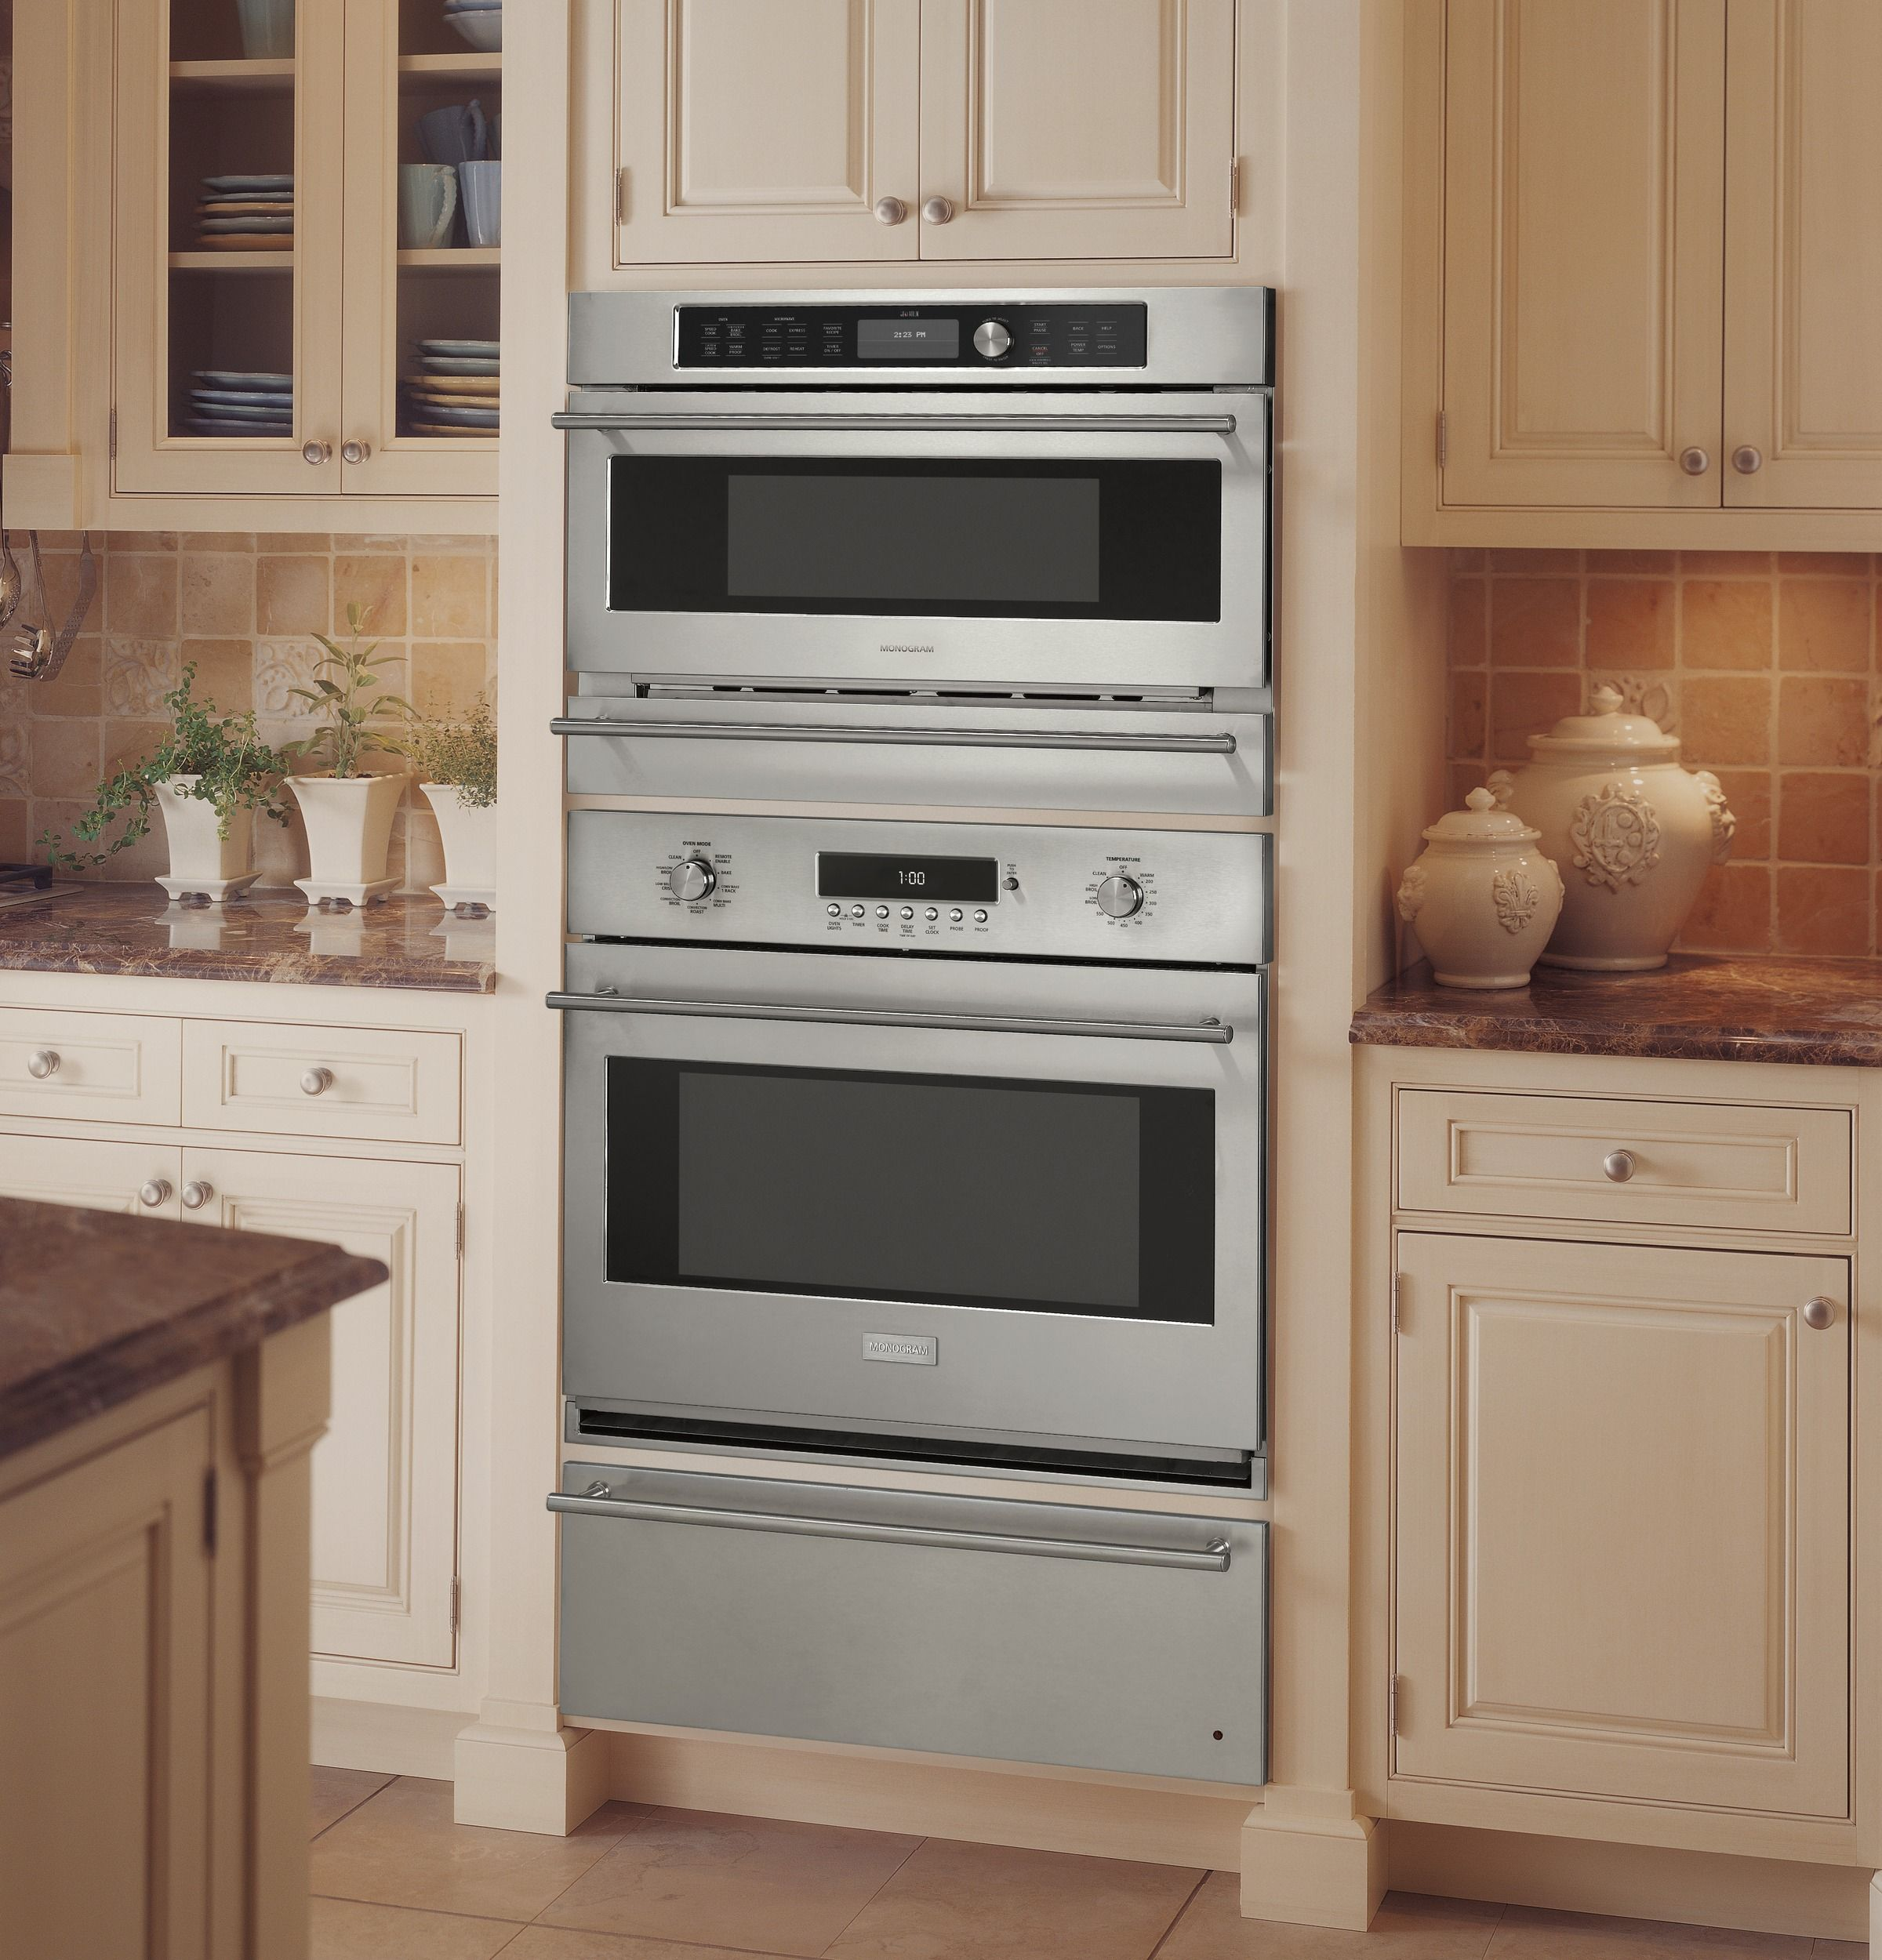 Ge Monogram Advantium Sdcooking Oven Installed Over A Single Convection Wall Warming Drawer